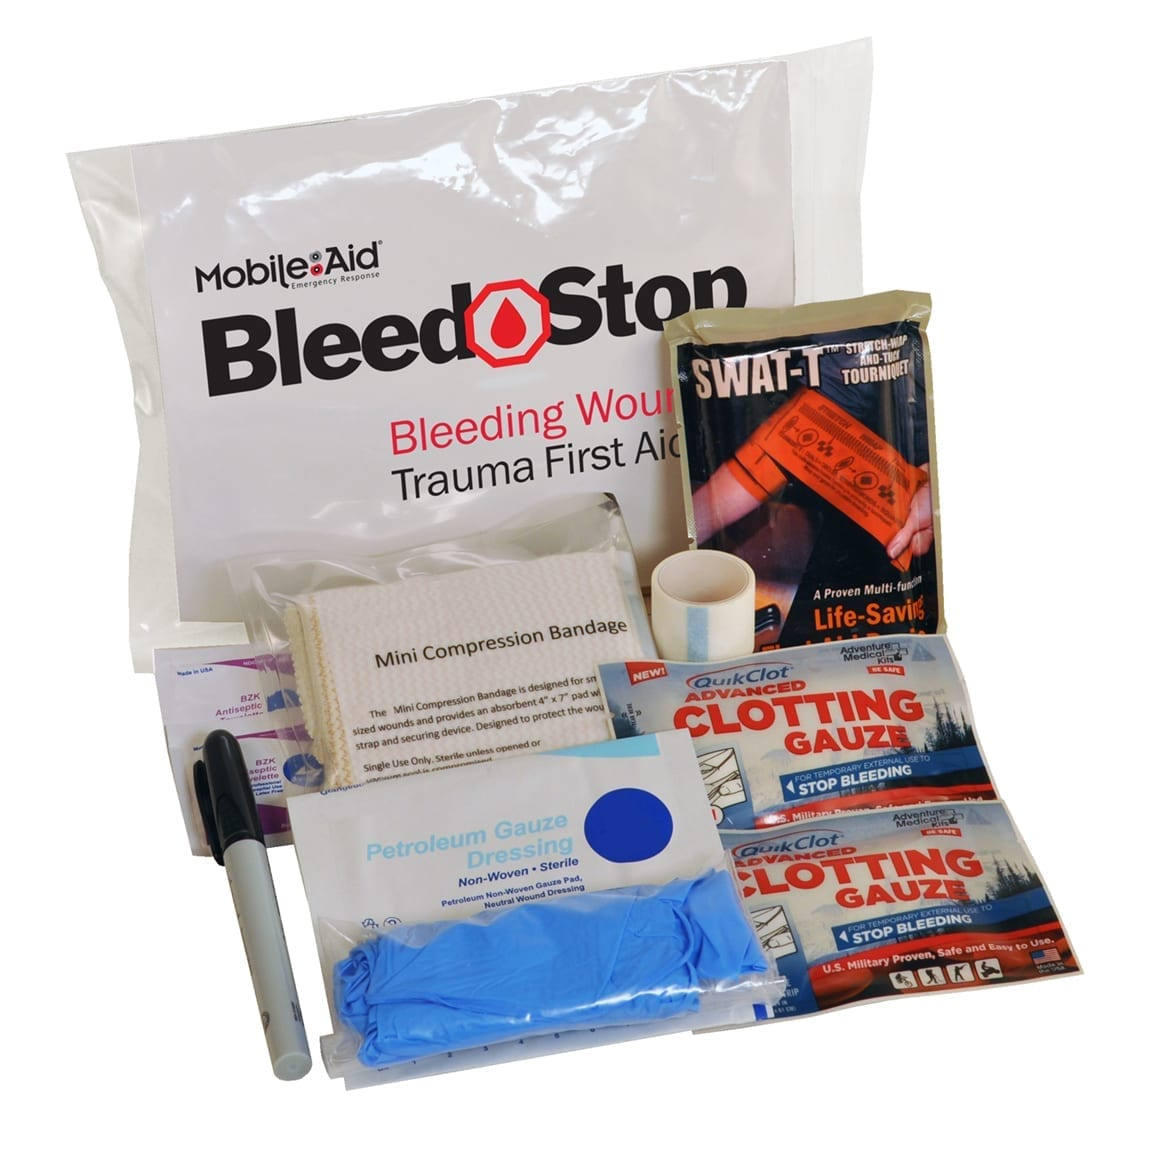 Bleed Stop Compact 100 Bleeding Control Amp Gunshot Wound